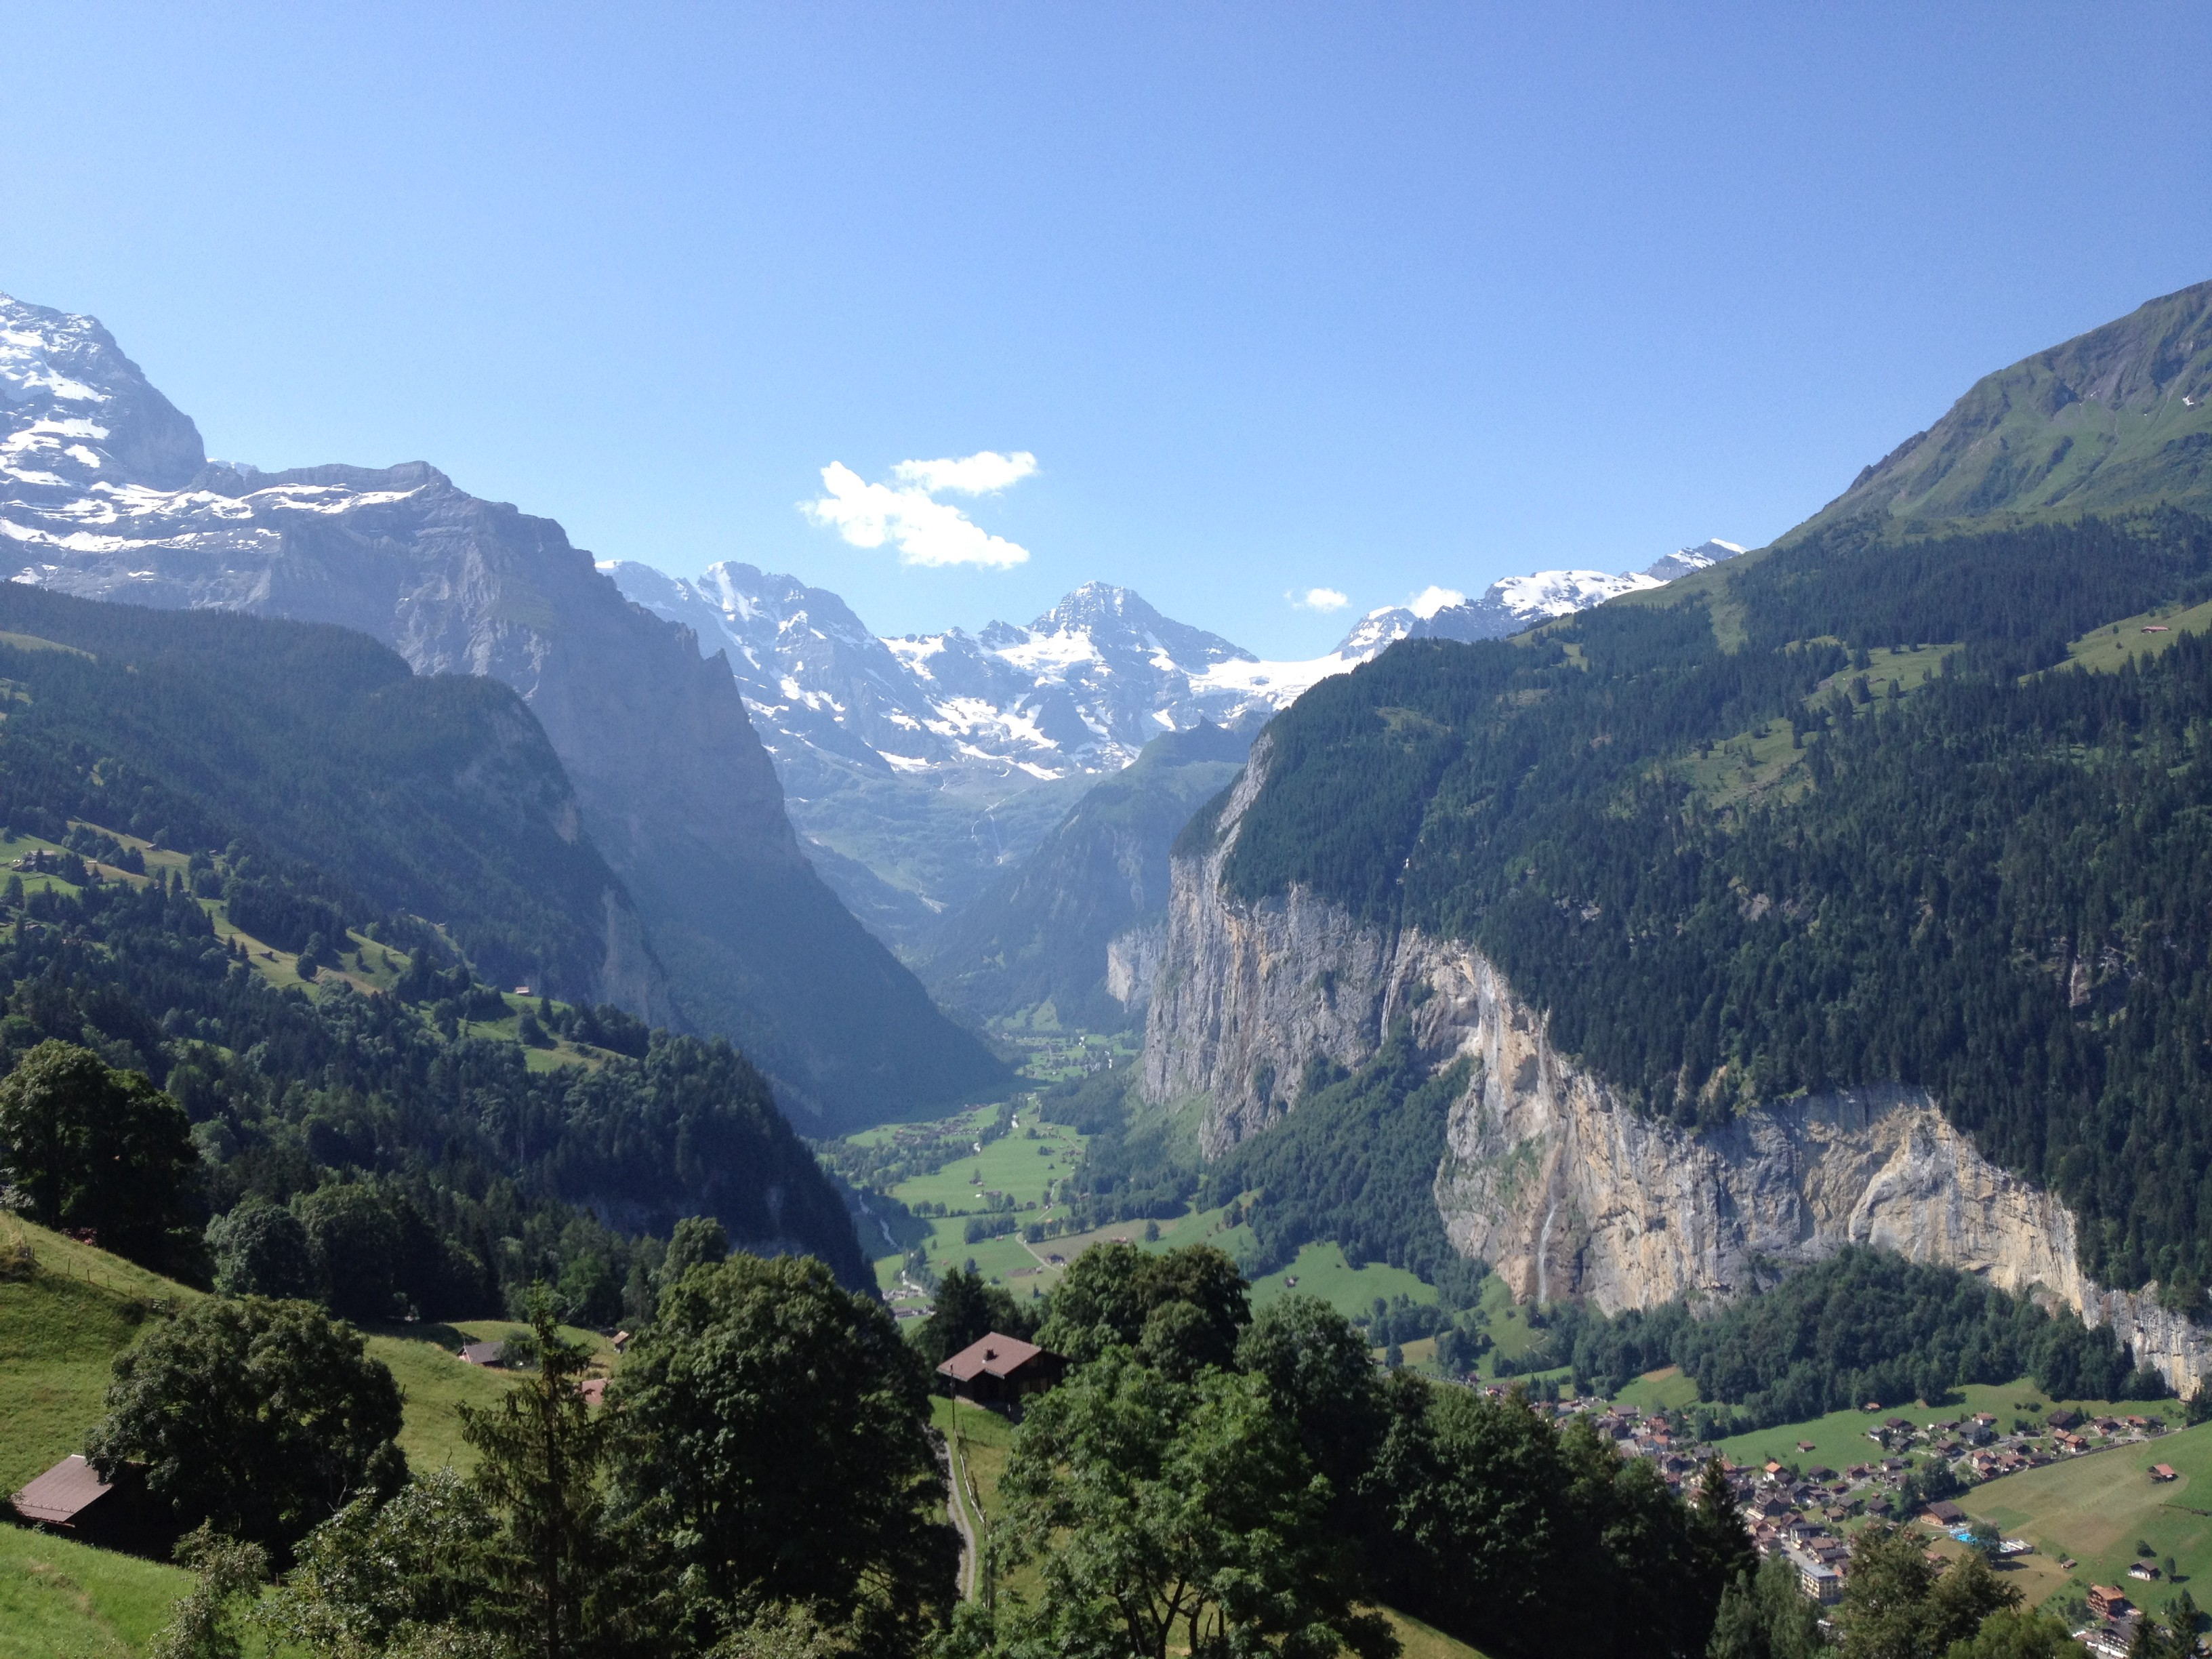 Alpine view of valleys and mountains in Switzerland